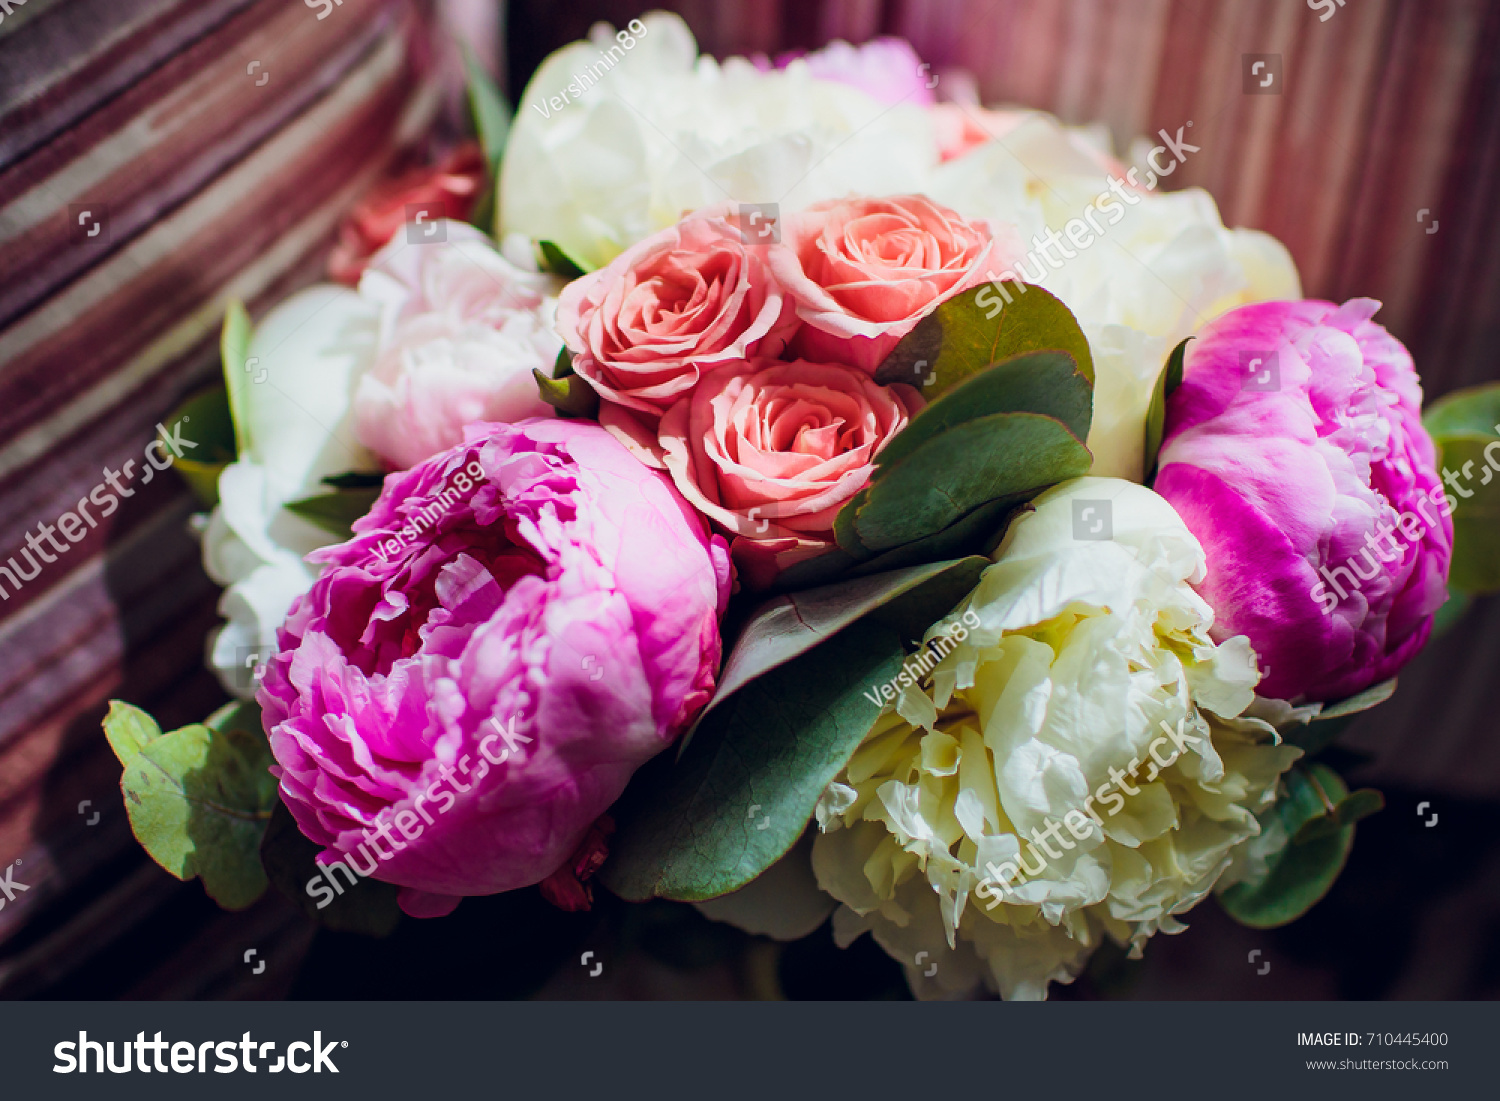 Wedding Bouquet Bouquet Flower Rose Pink Stock Photo (Royalty Free ...